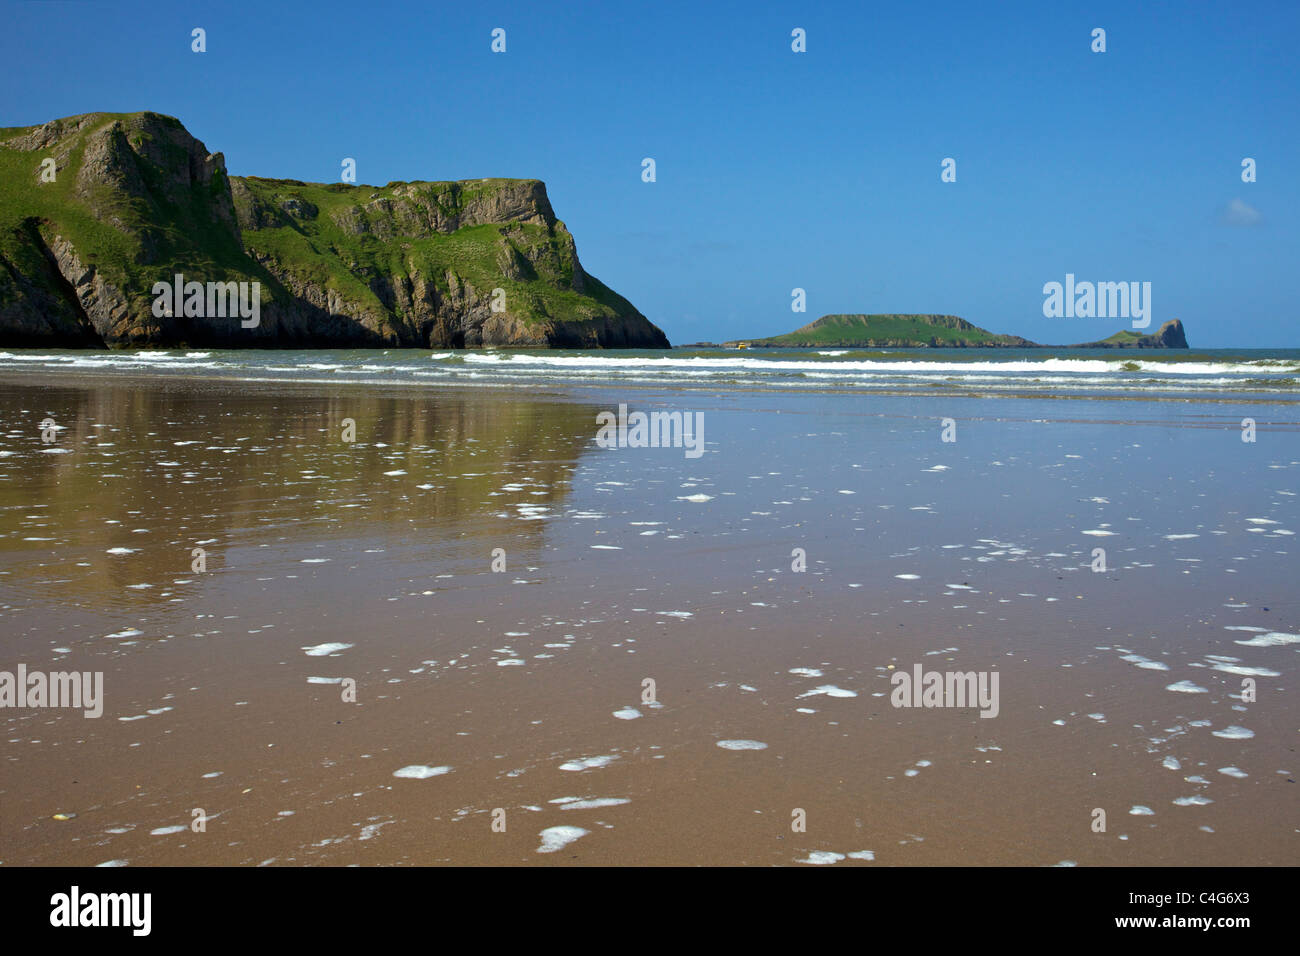 Rhossili Beach looking to Worm's Head in spring sunshine Gower Peninsula Wales Cymru UK GB British Isles - Stock Image